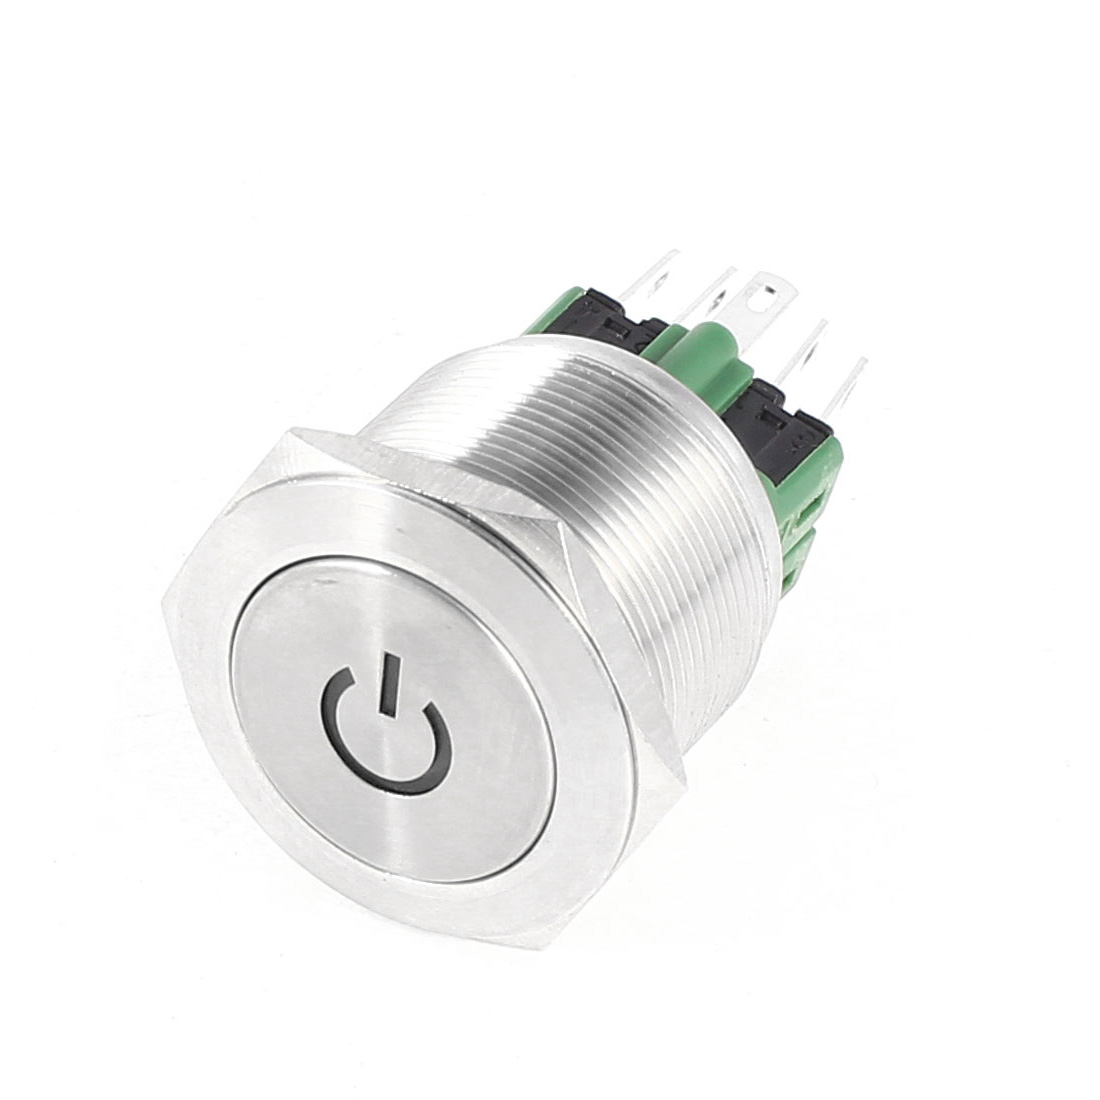 12V White LED Lamp 6-Pin 1NO 1NC Latching 19mm Stainless Steel Self-locking Push button Switch SPDT